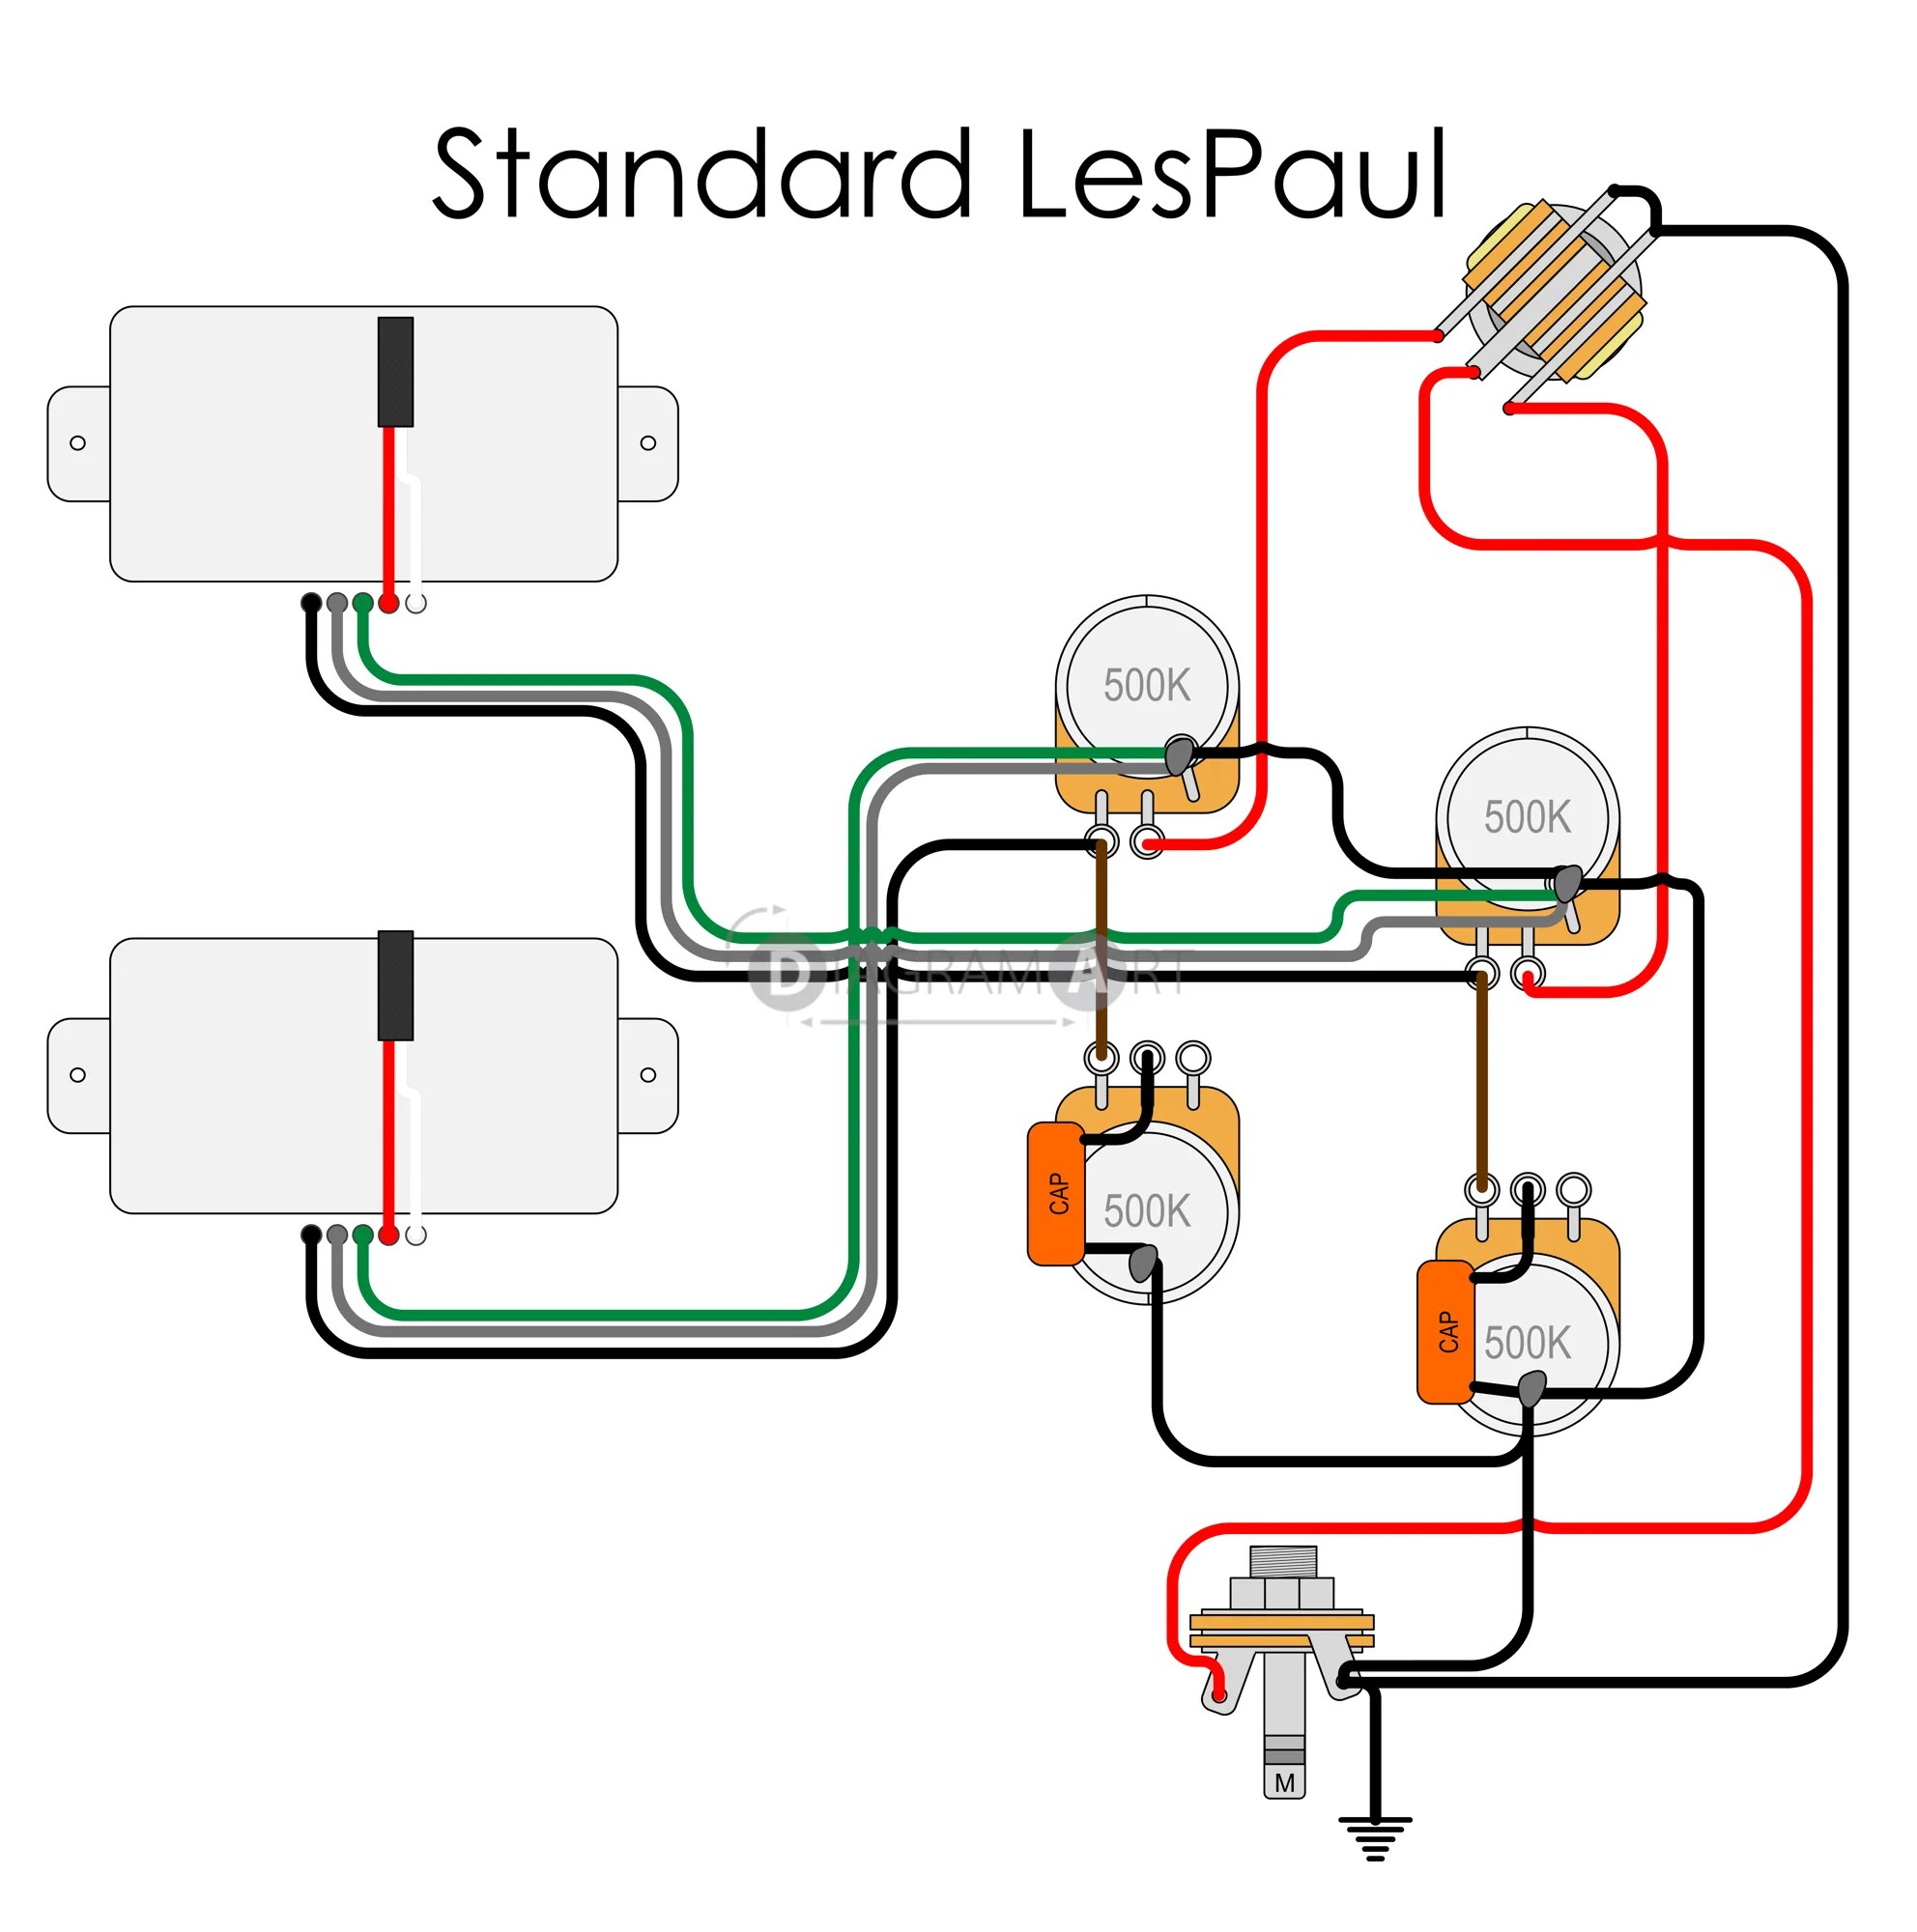 hight resolution of electric guitar wiring standard lespaul electric circuit free sketch diagramart author